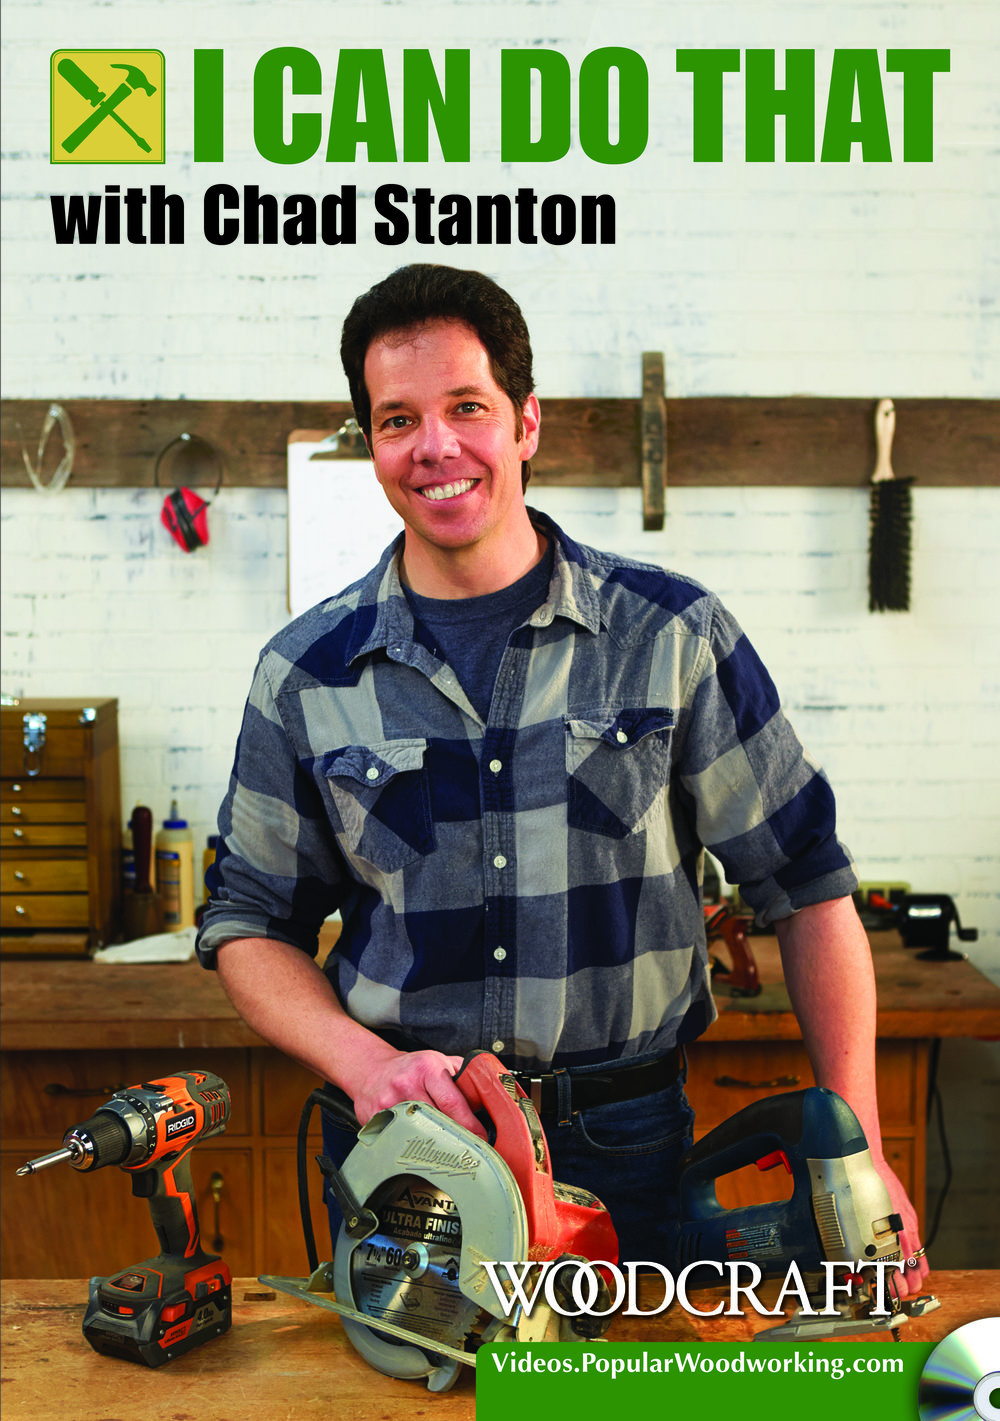 Chad Stanton - I Can Do That, Popular Woodworking